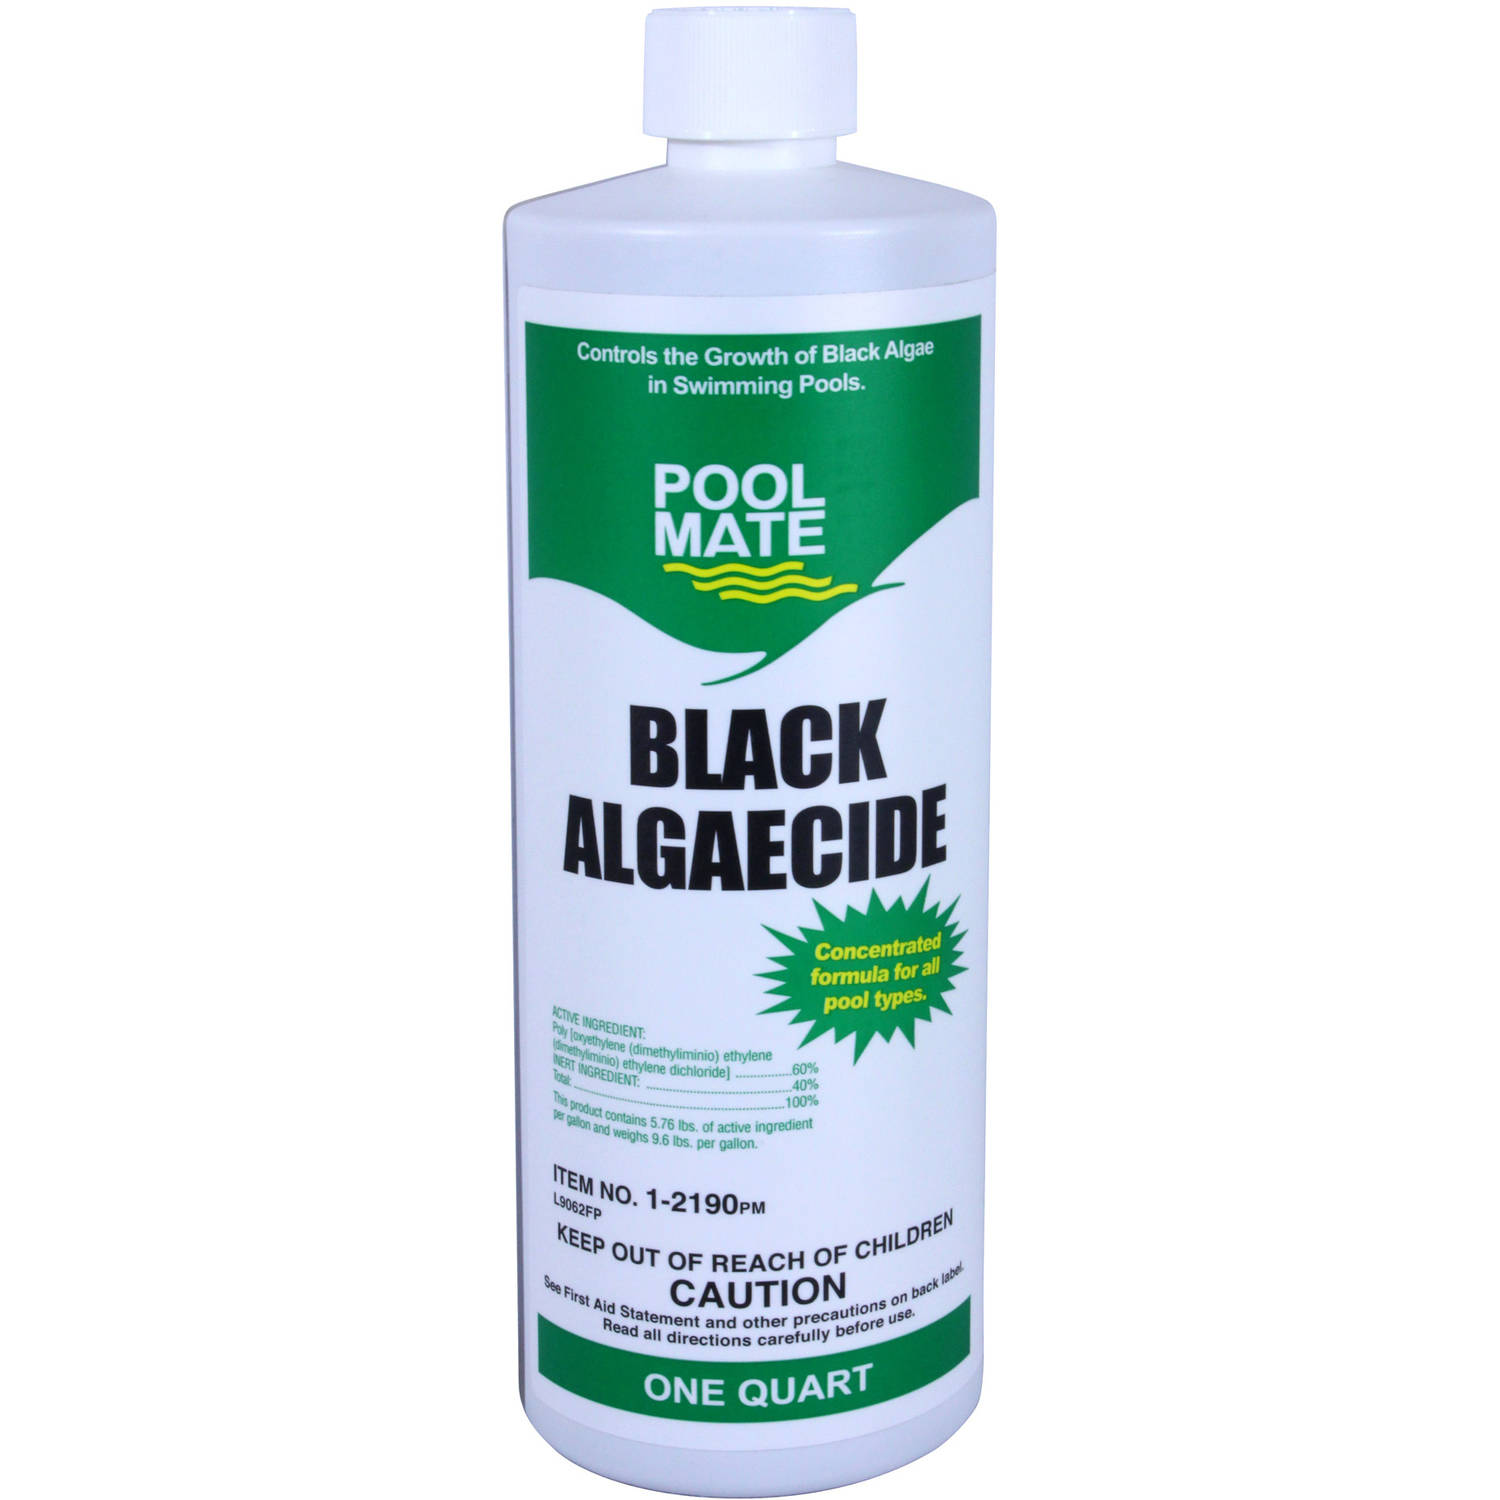 Pool Mate Black Algaecide for Swimming Pools, 1-Quart